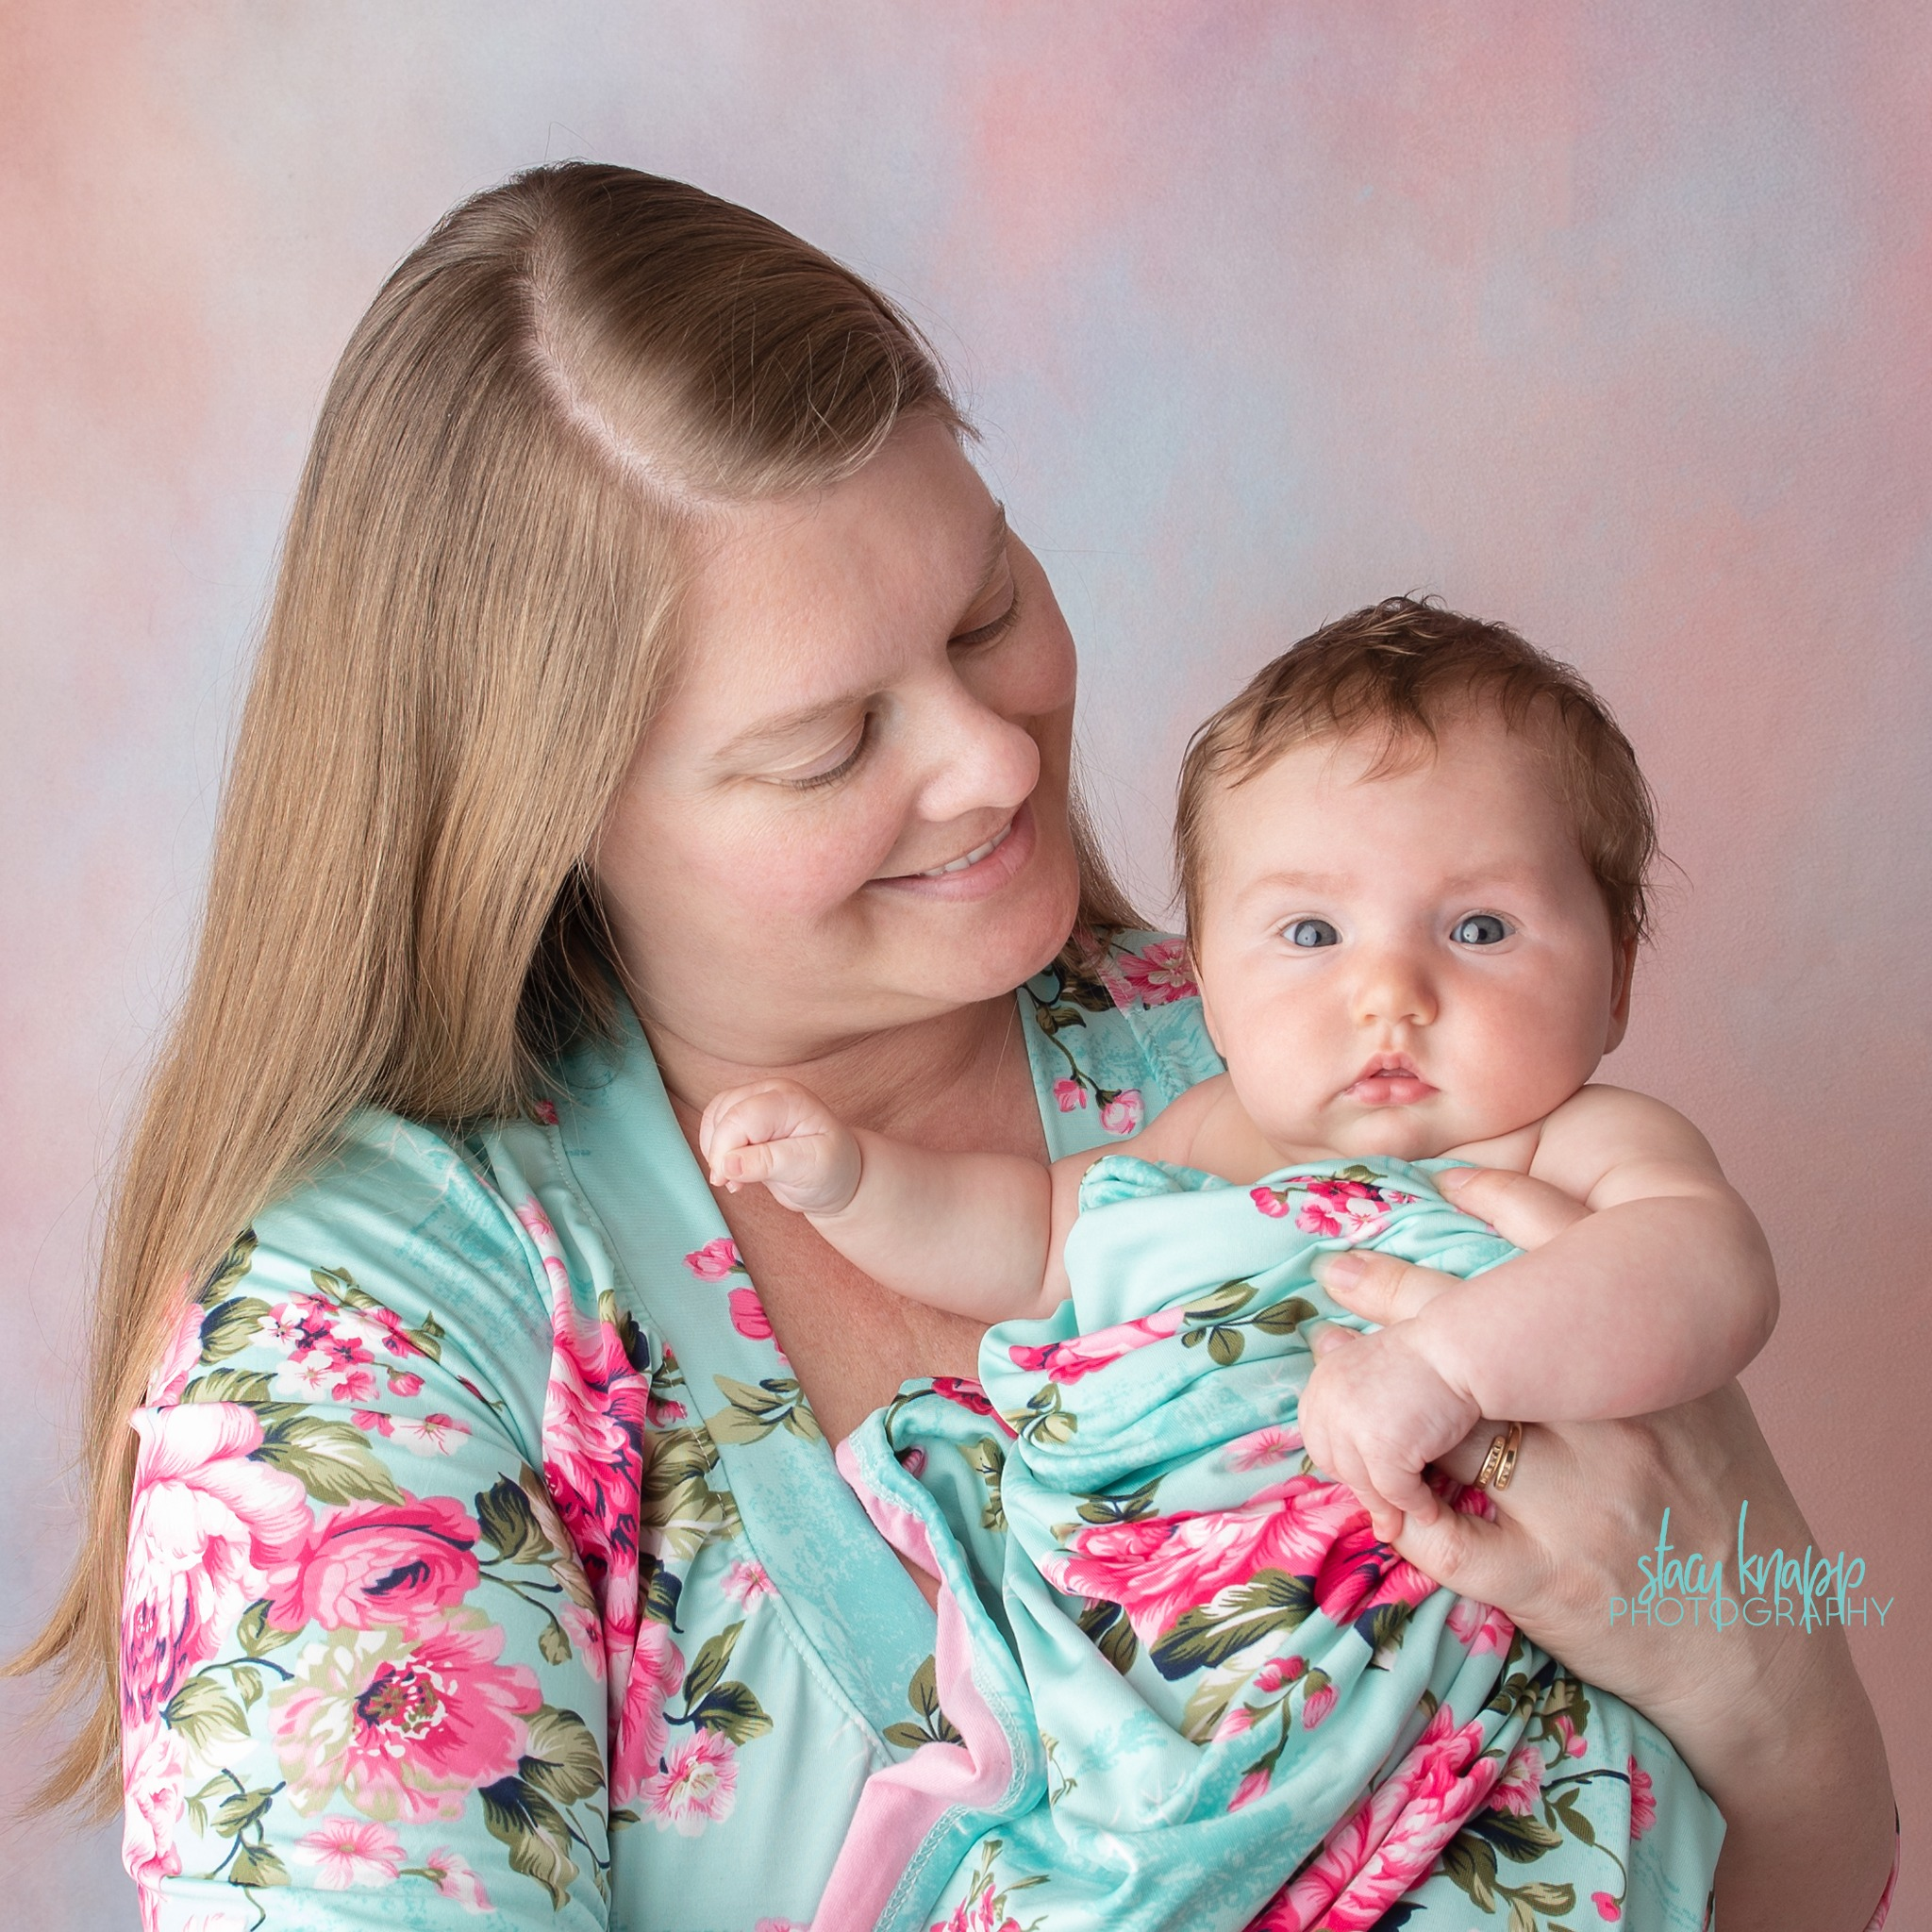 Mommy and me photo session with baby girl on pink backdrop